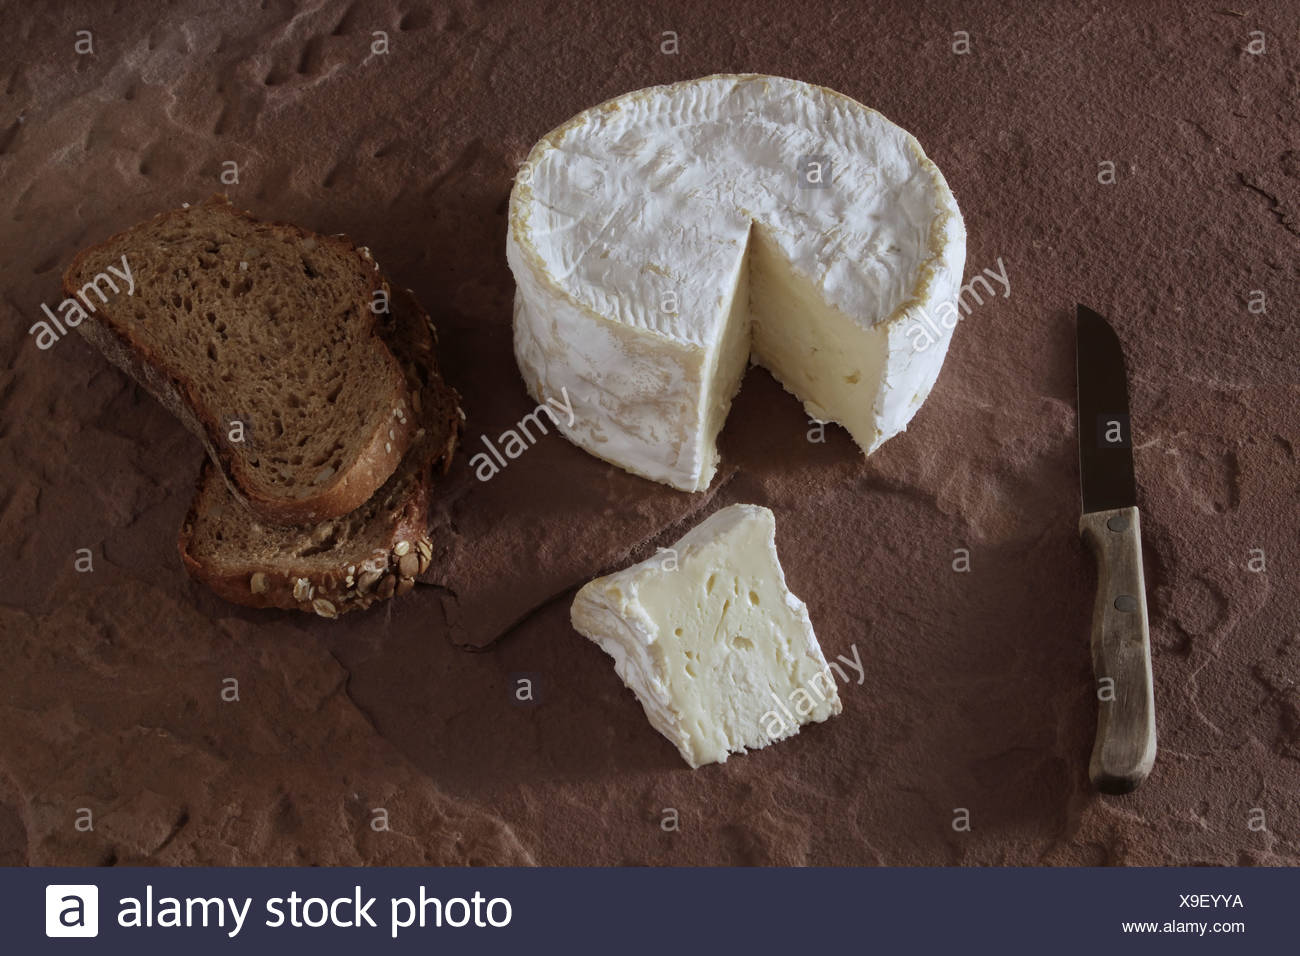 French soft cheese on sandstone - Stock Image